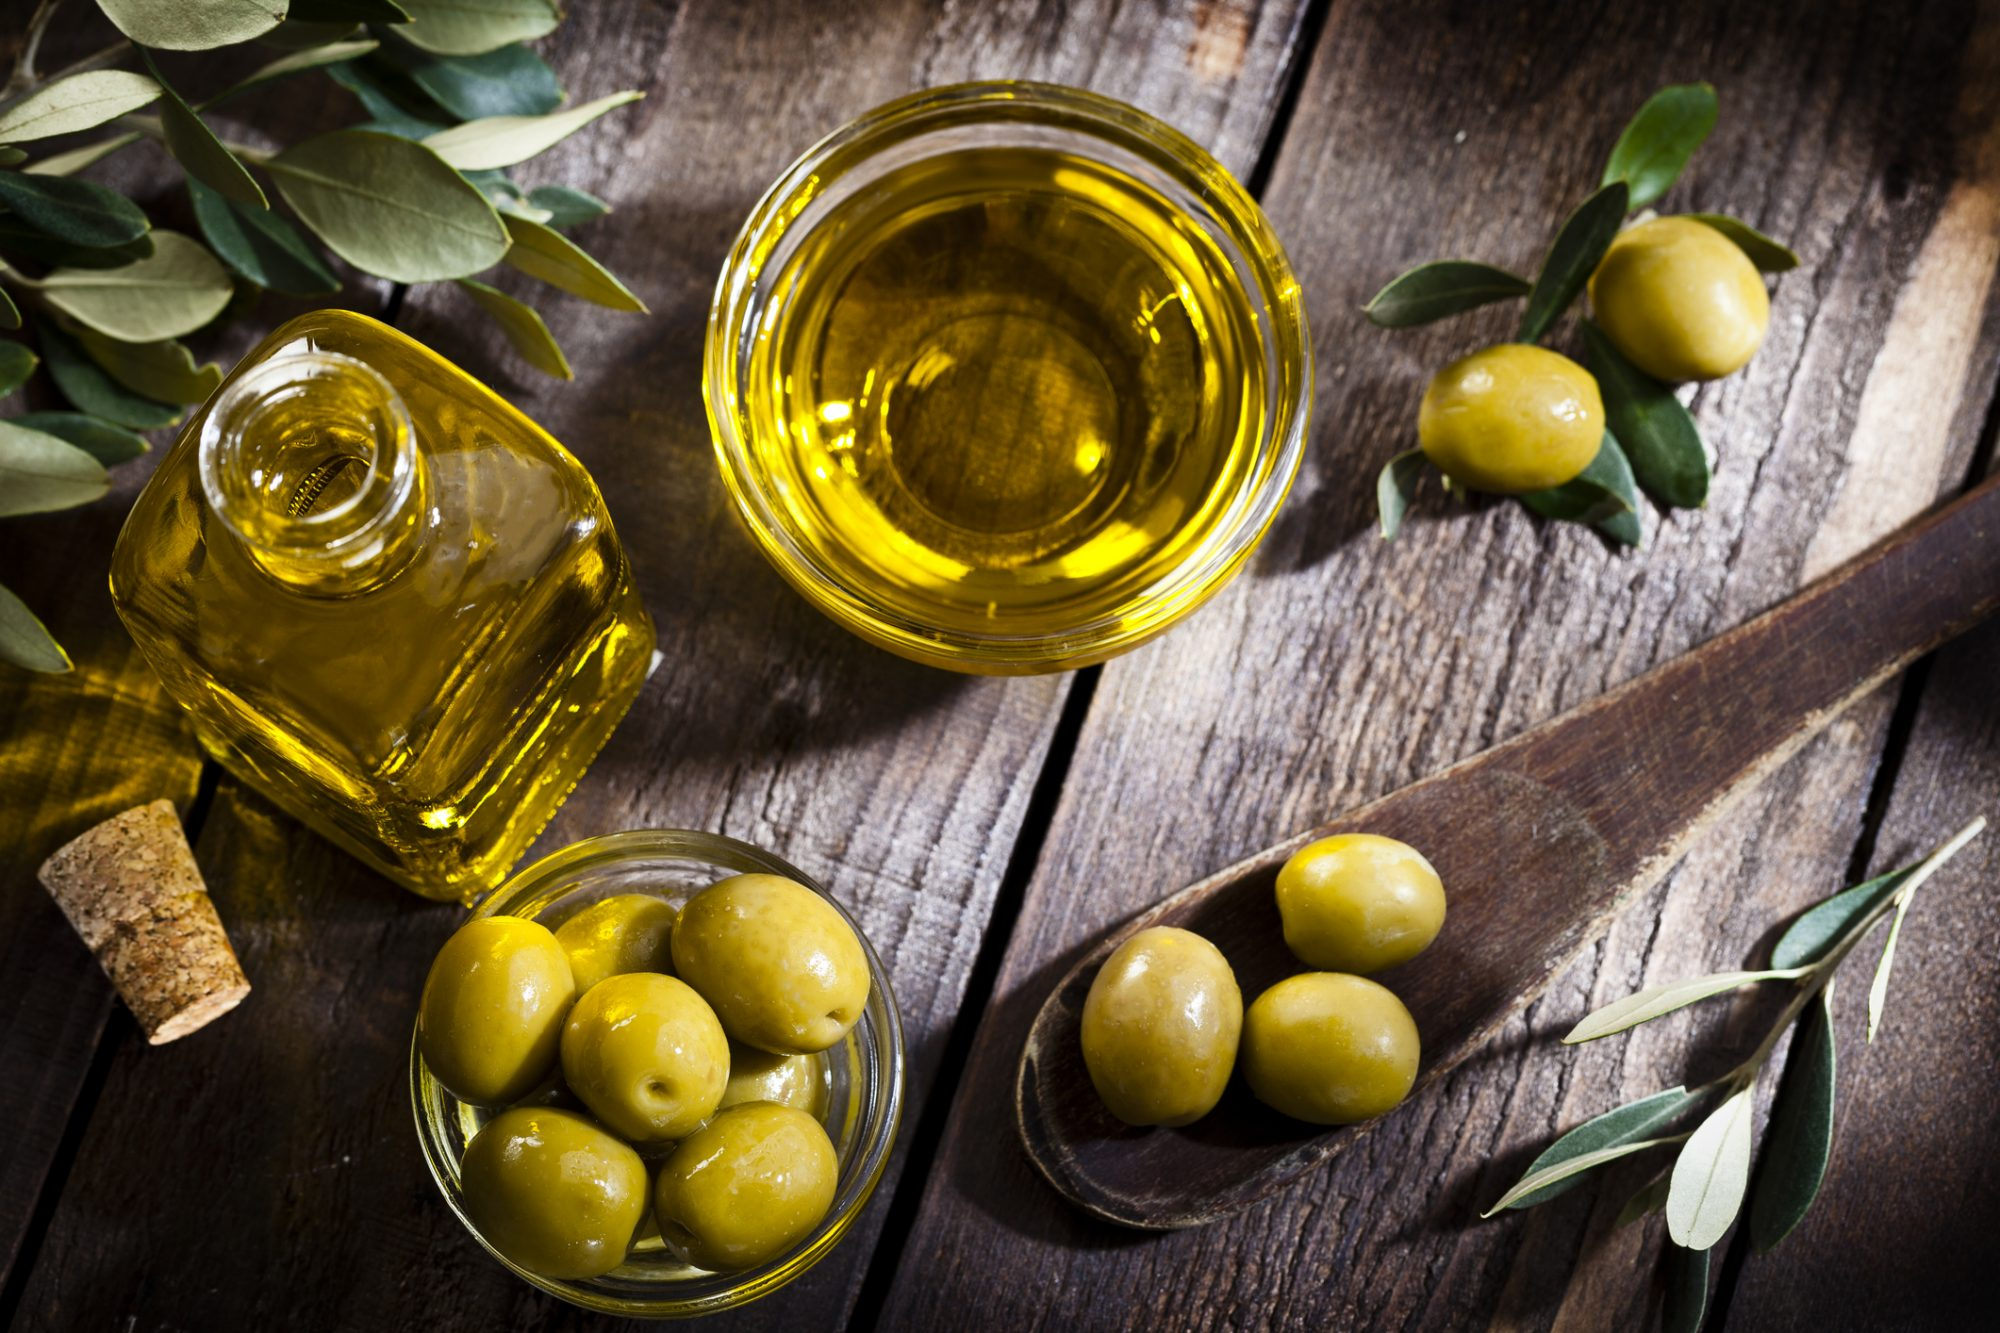 The Best Kitchen Hack Is Always Having Two Olive Oils